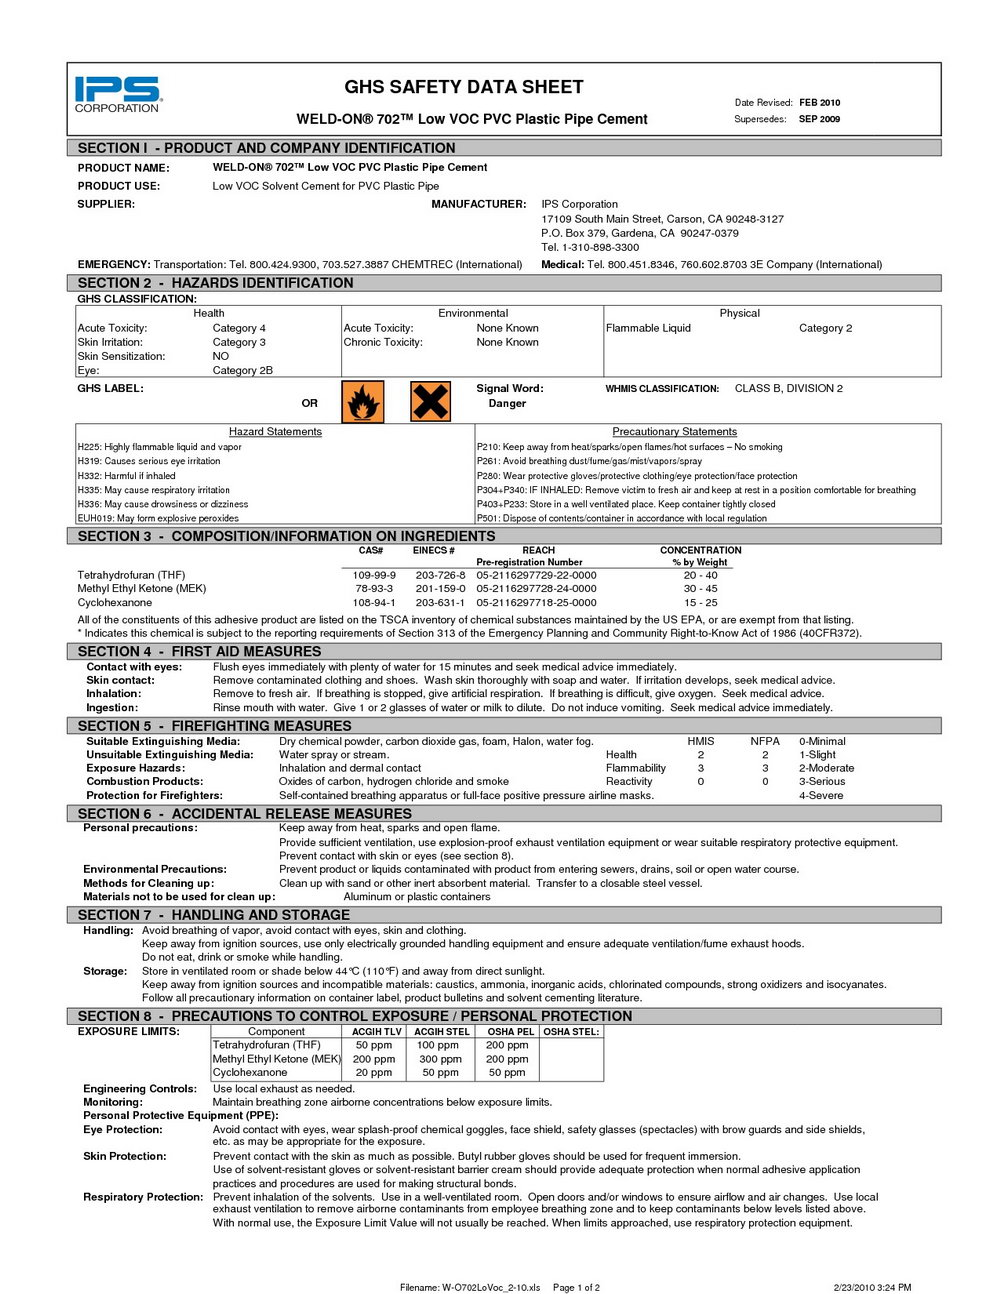 Ghs Sds Template